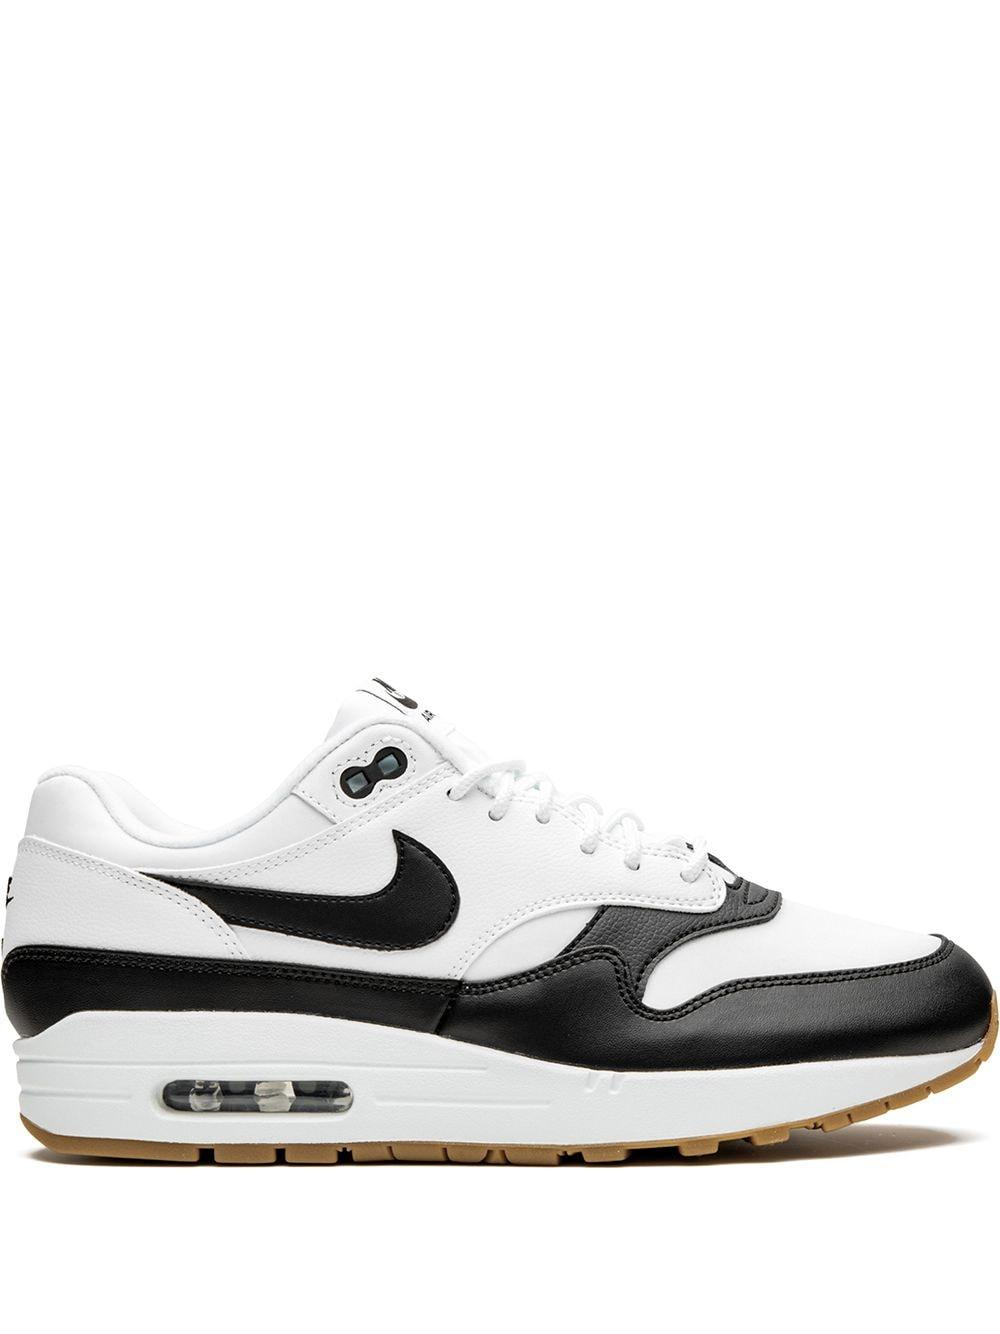 Nike White Leather Air Max 1 Se Low-top Sneakers - US Size: 8 ...